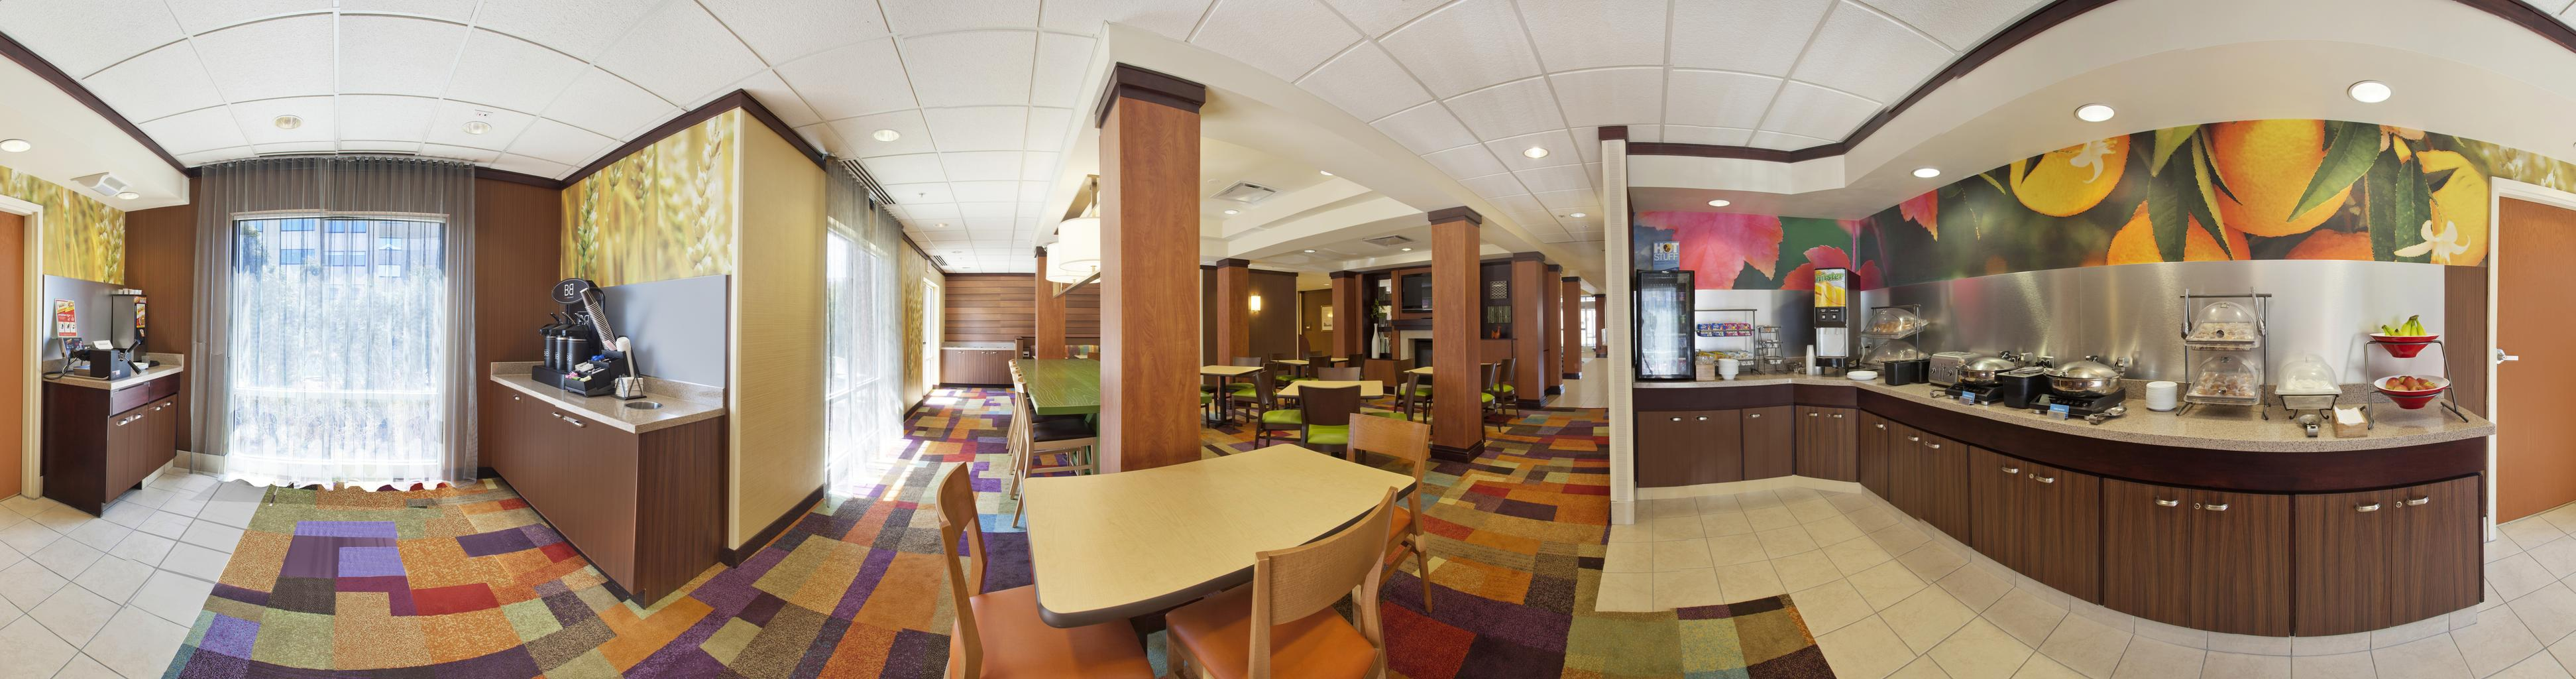 Fairfield Inn & Suites by Marriott Detroit Metro Airport Romulus image 9